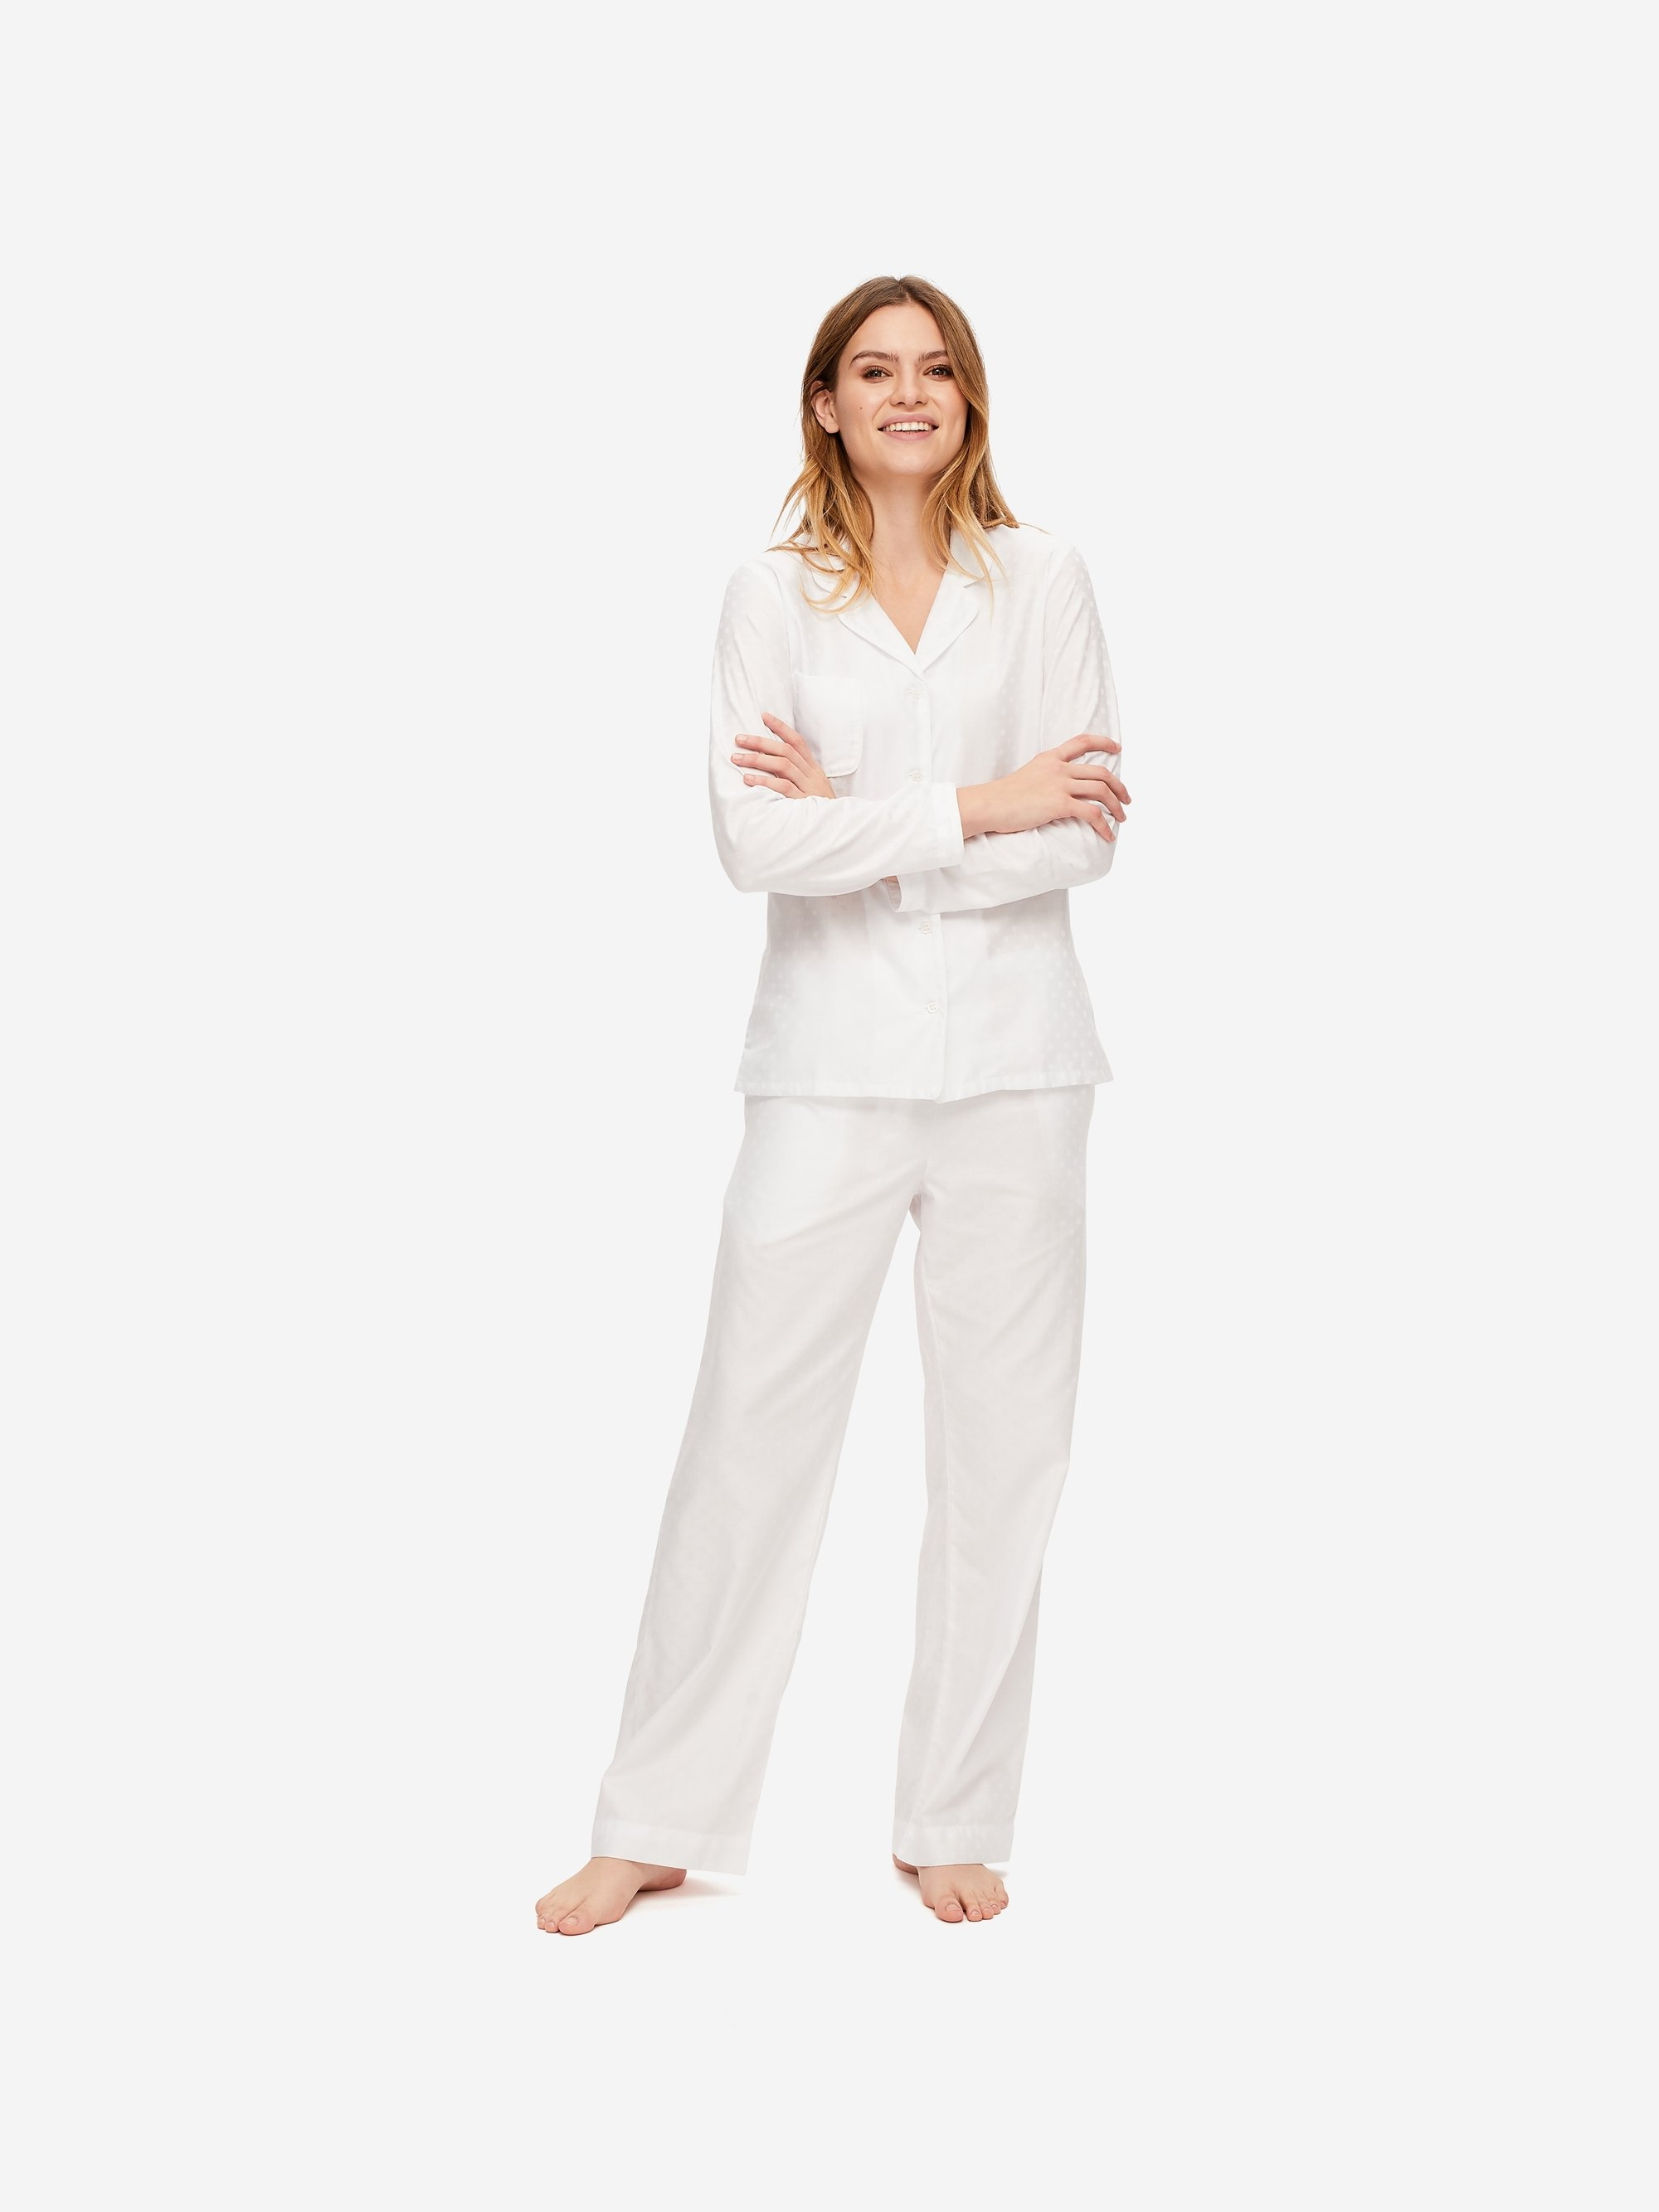 Women's Pyjamas Kate 7 Cotton Jacquard White